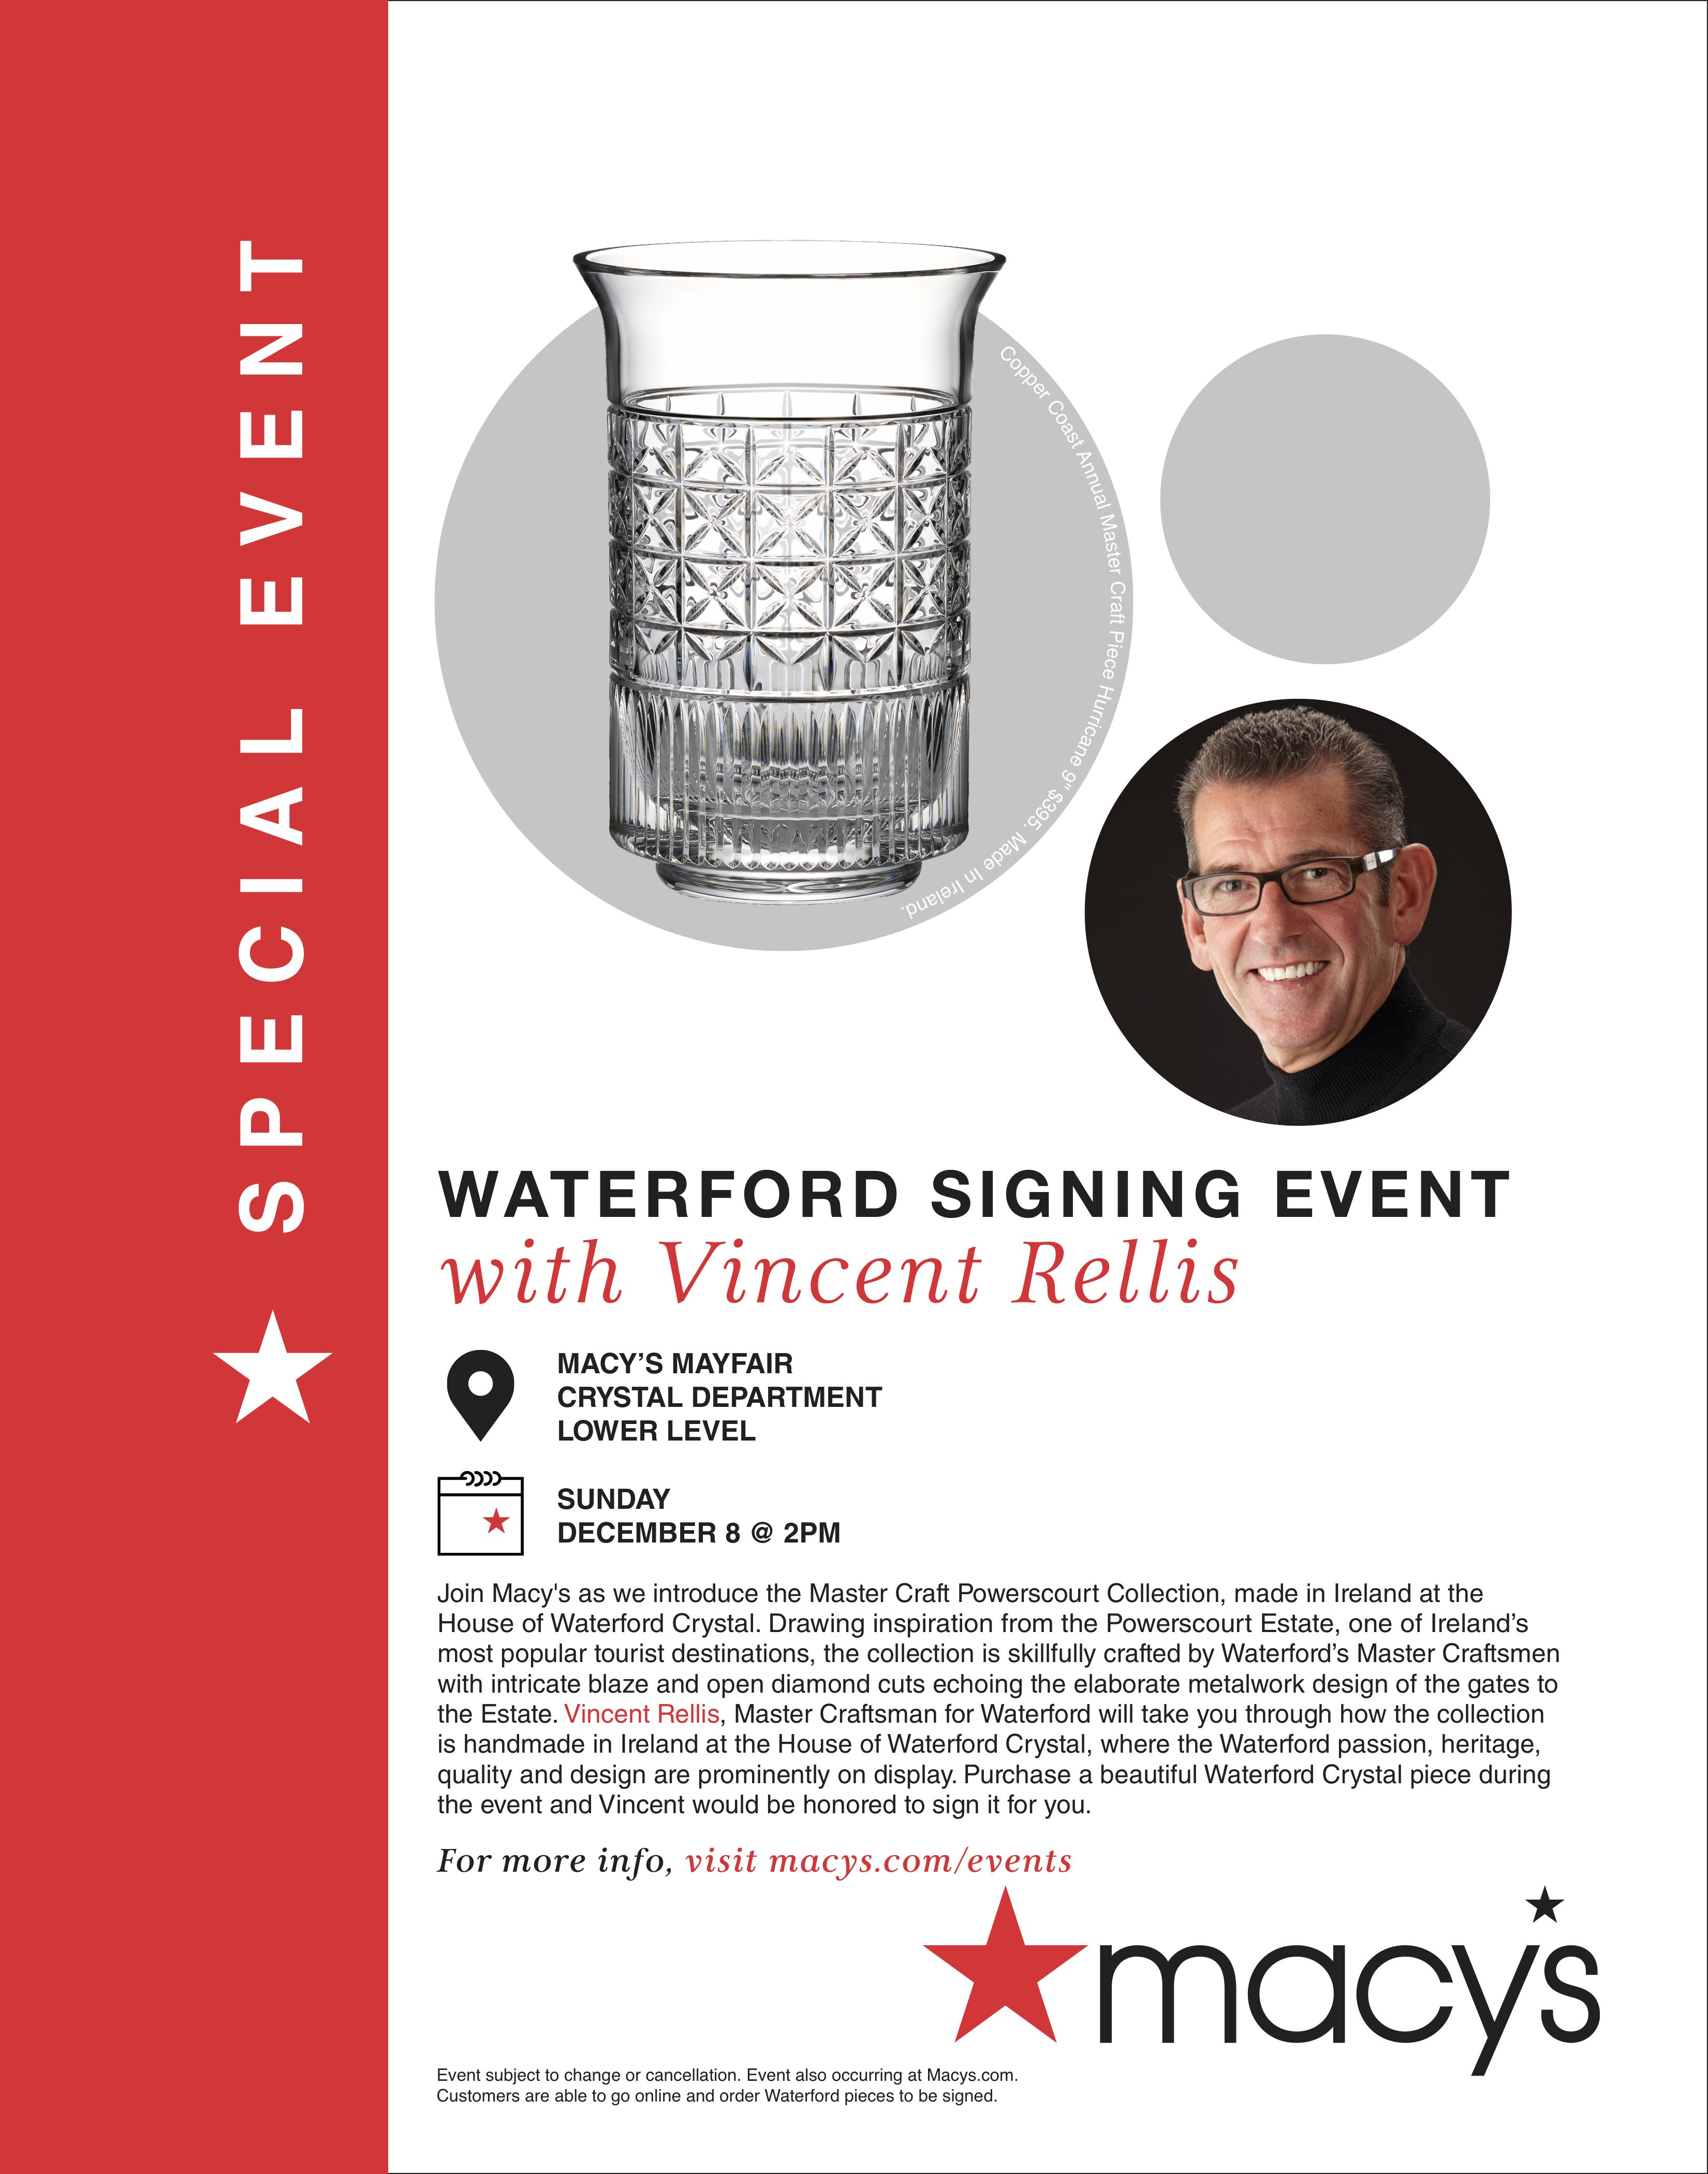 Macy's Waterford Event from macy's